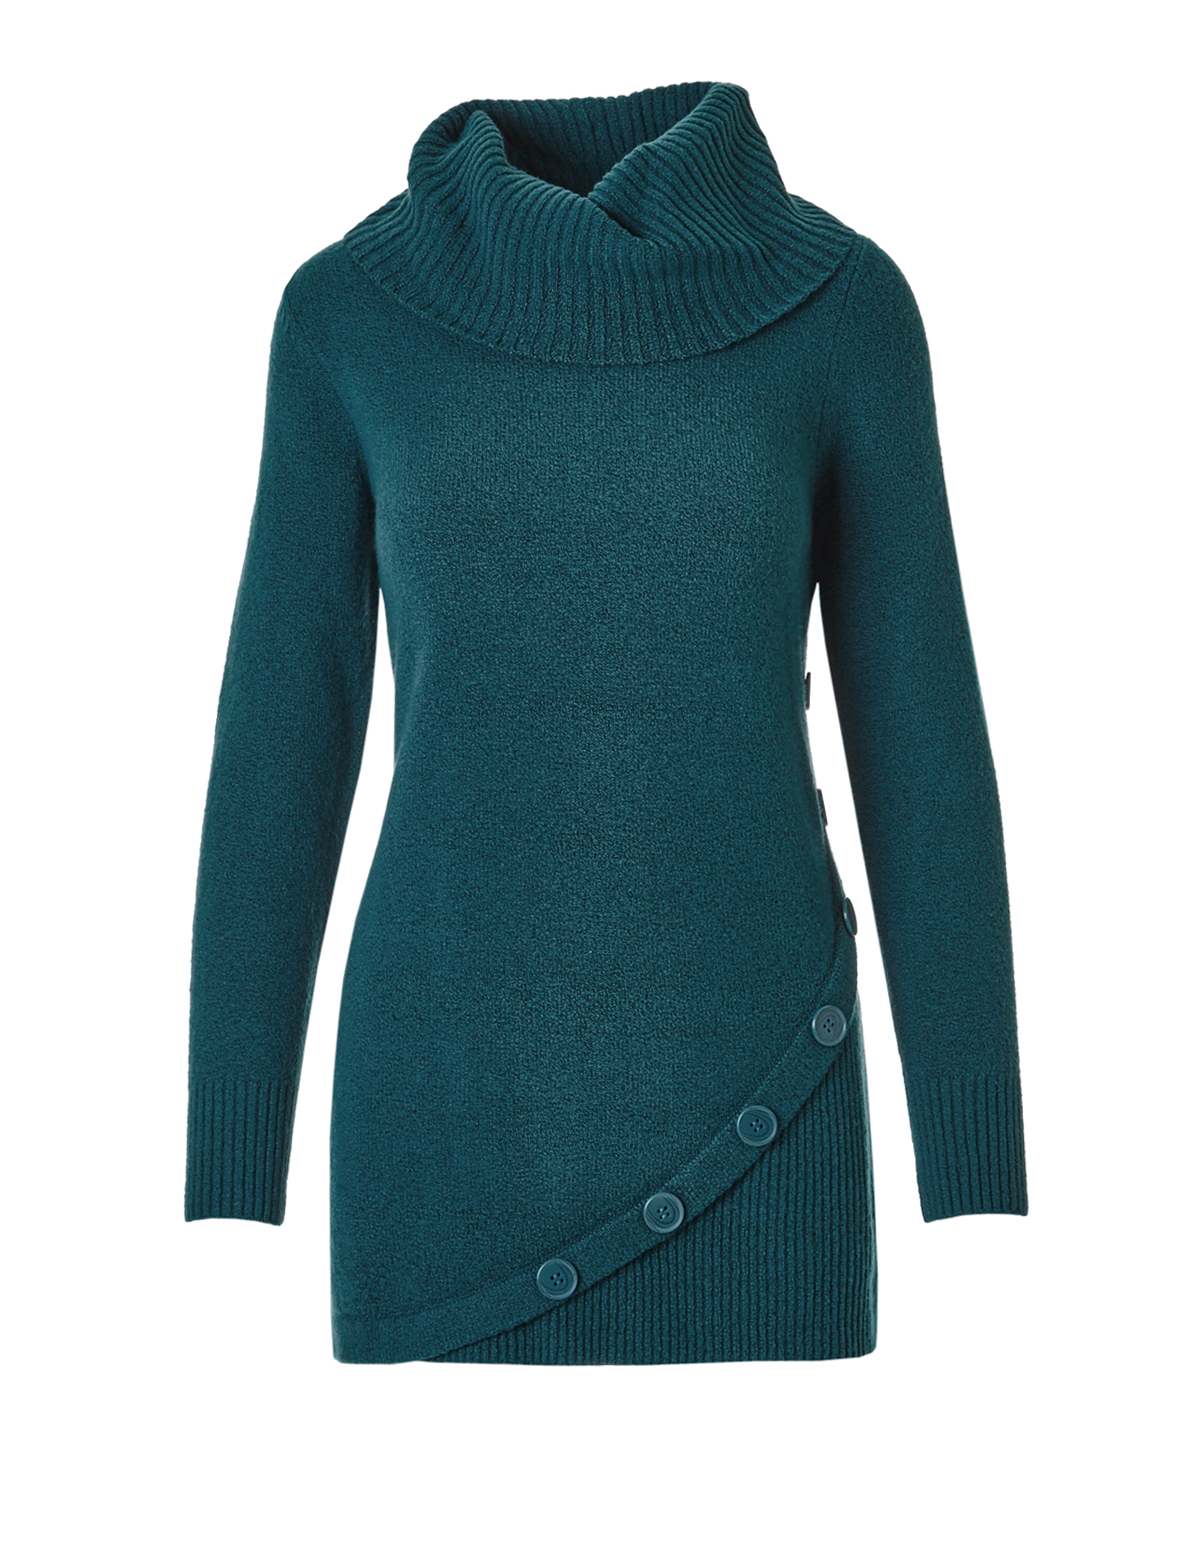 Green Teal Cowl Neck Sweater | Cleo